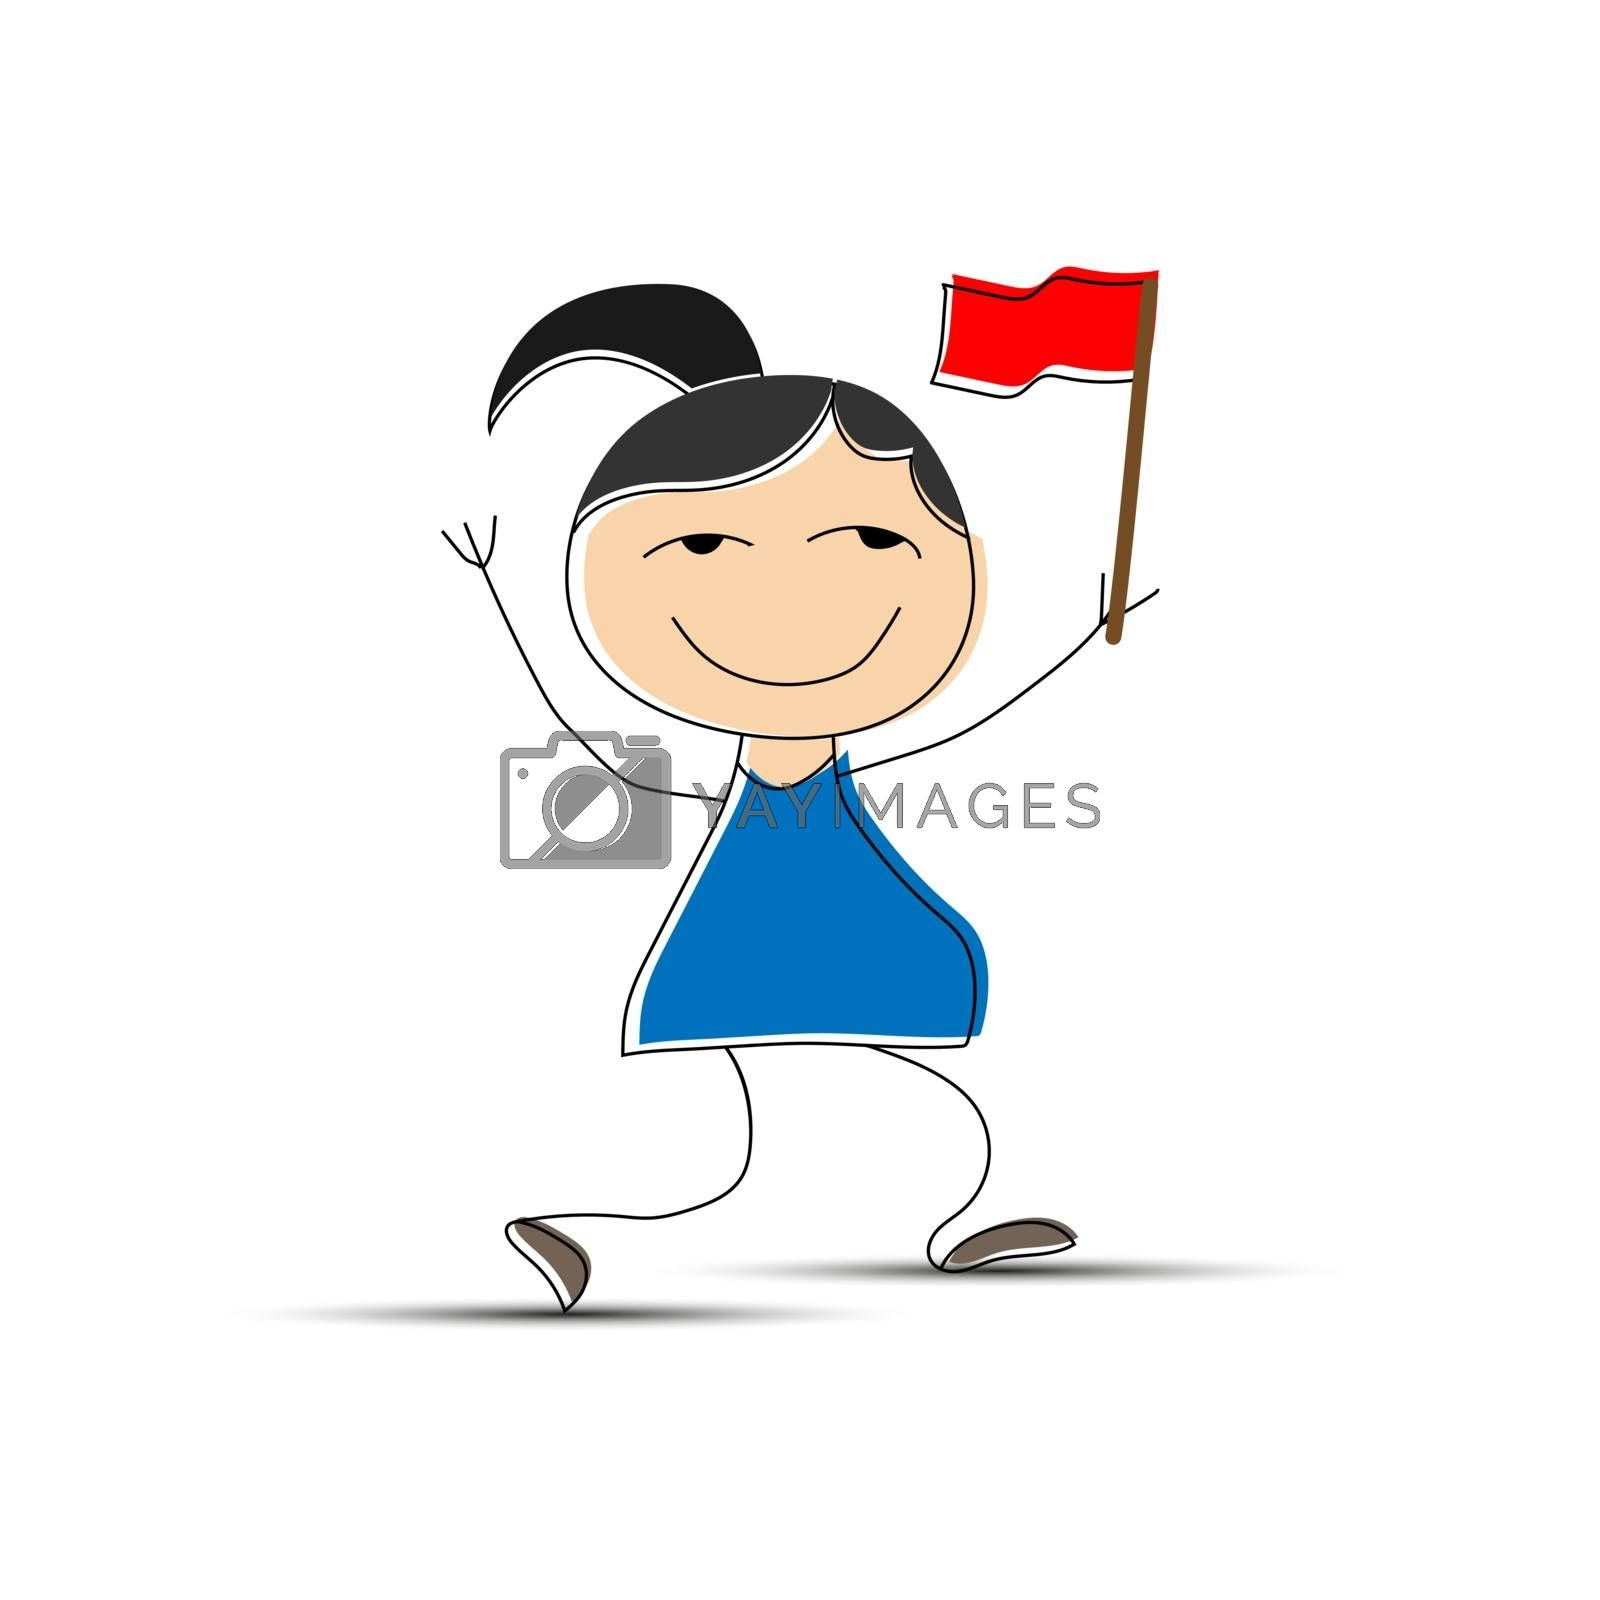 Royalty free image of Cheerful girl with red flag in hand, flat design by Grommik